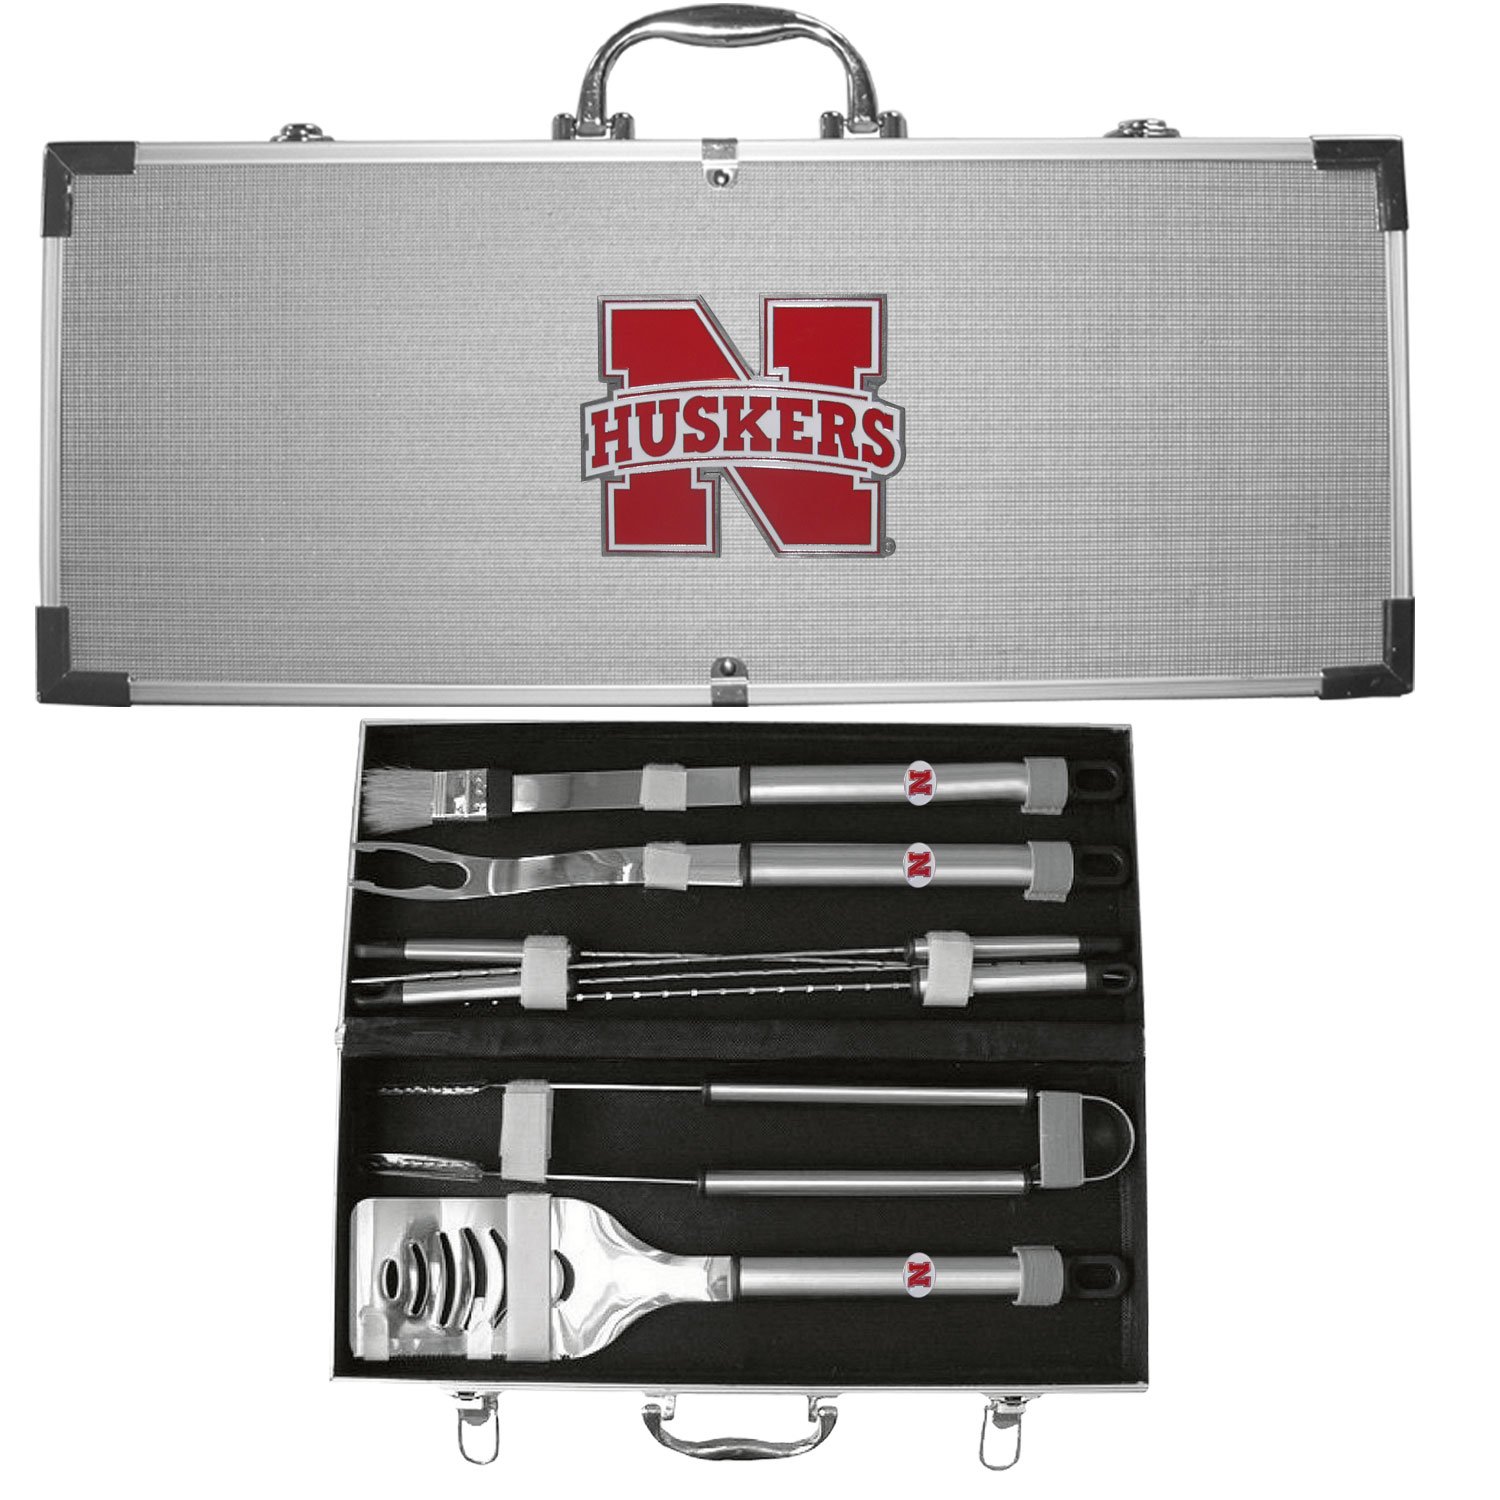 "College 8 pc BBQ Set - Nebraska Cornhuskers - Our collegiate 8 pc BBQ set includes a spatula with knife edge, grill fork, tongs, basting brush and 4 skewers. The tools are approximately 19"" long and have sturdy stainless steel handles. The aluminum carrying case features a metal carved emblem with enameled finish. Thank you for shopping with CrazedOutSports.com"